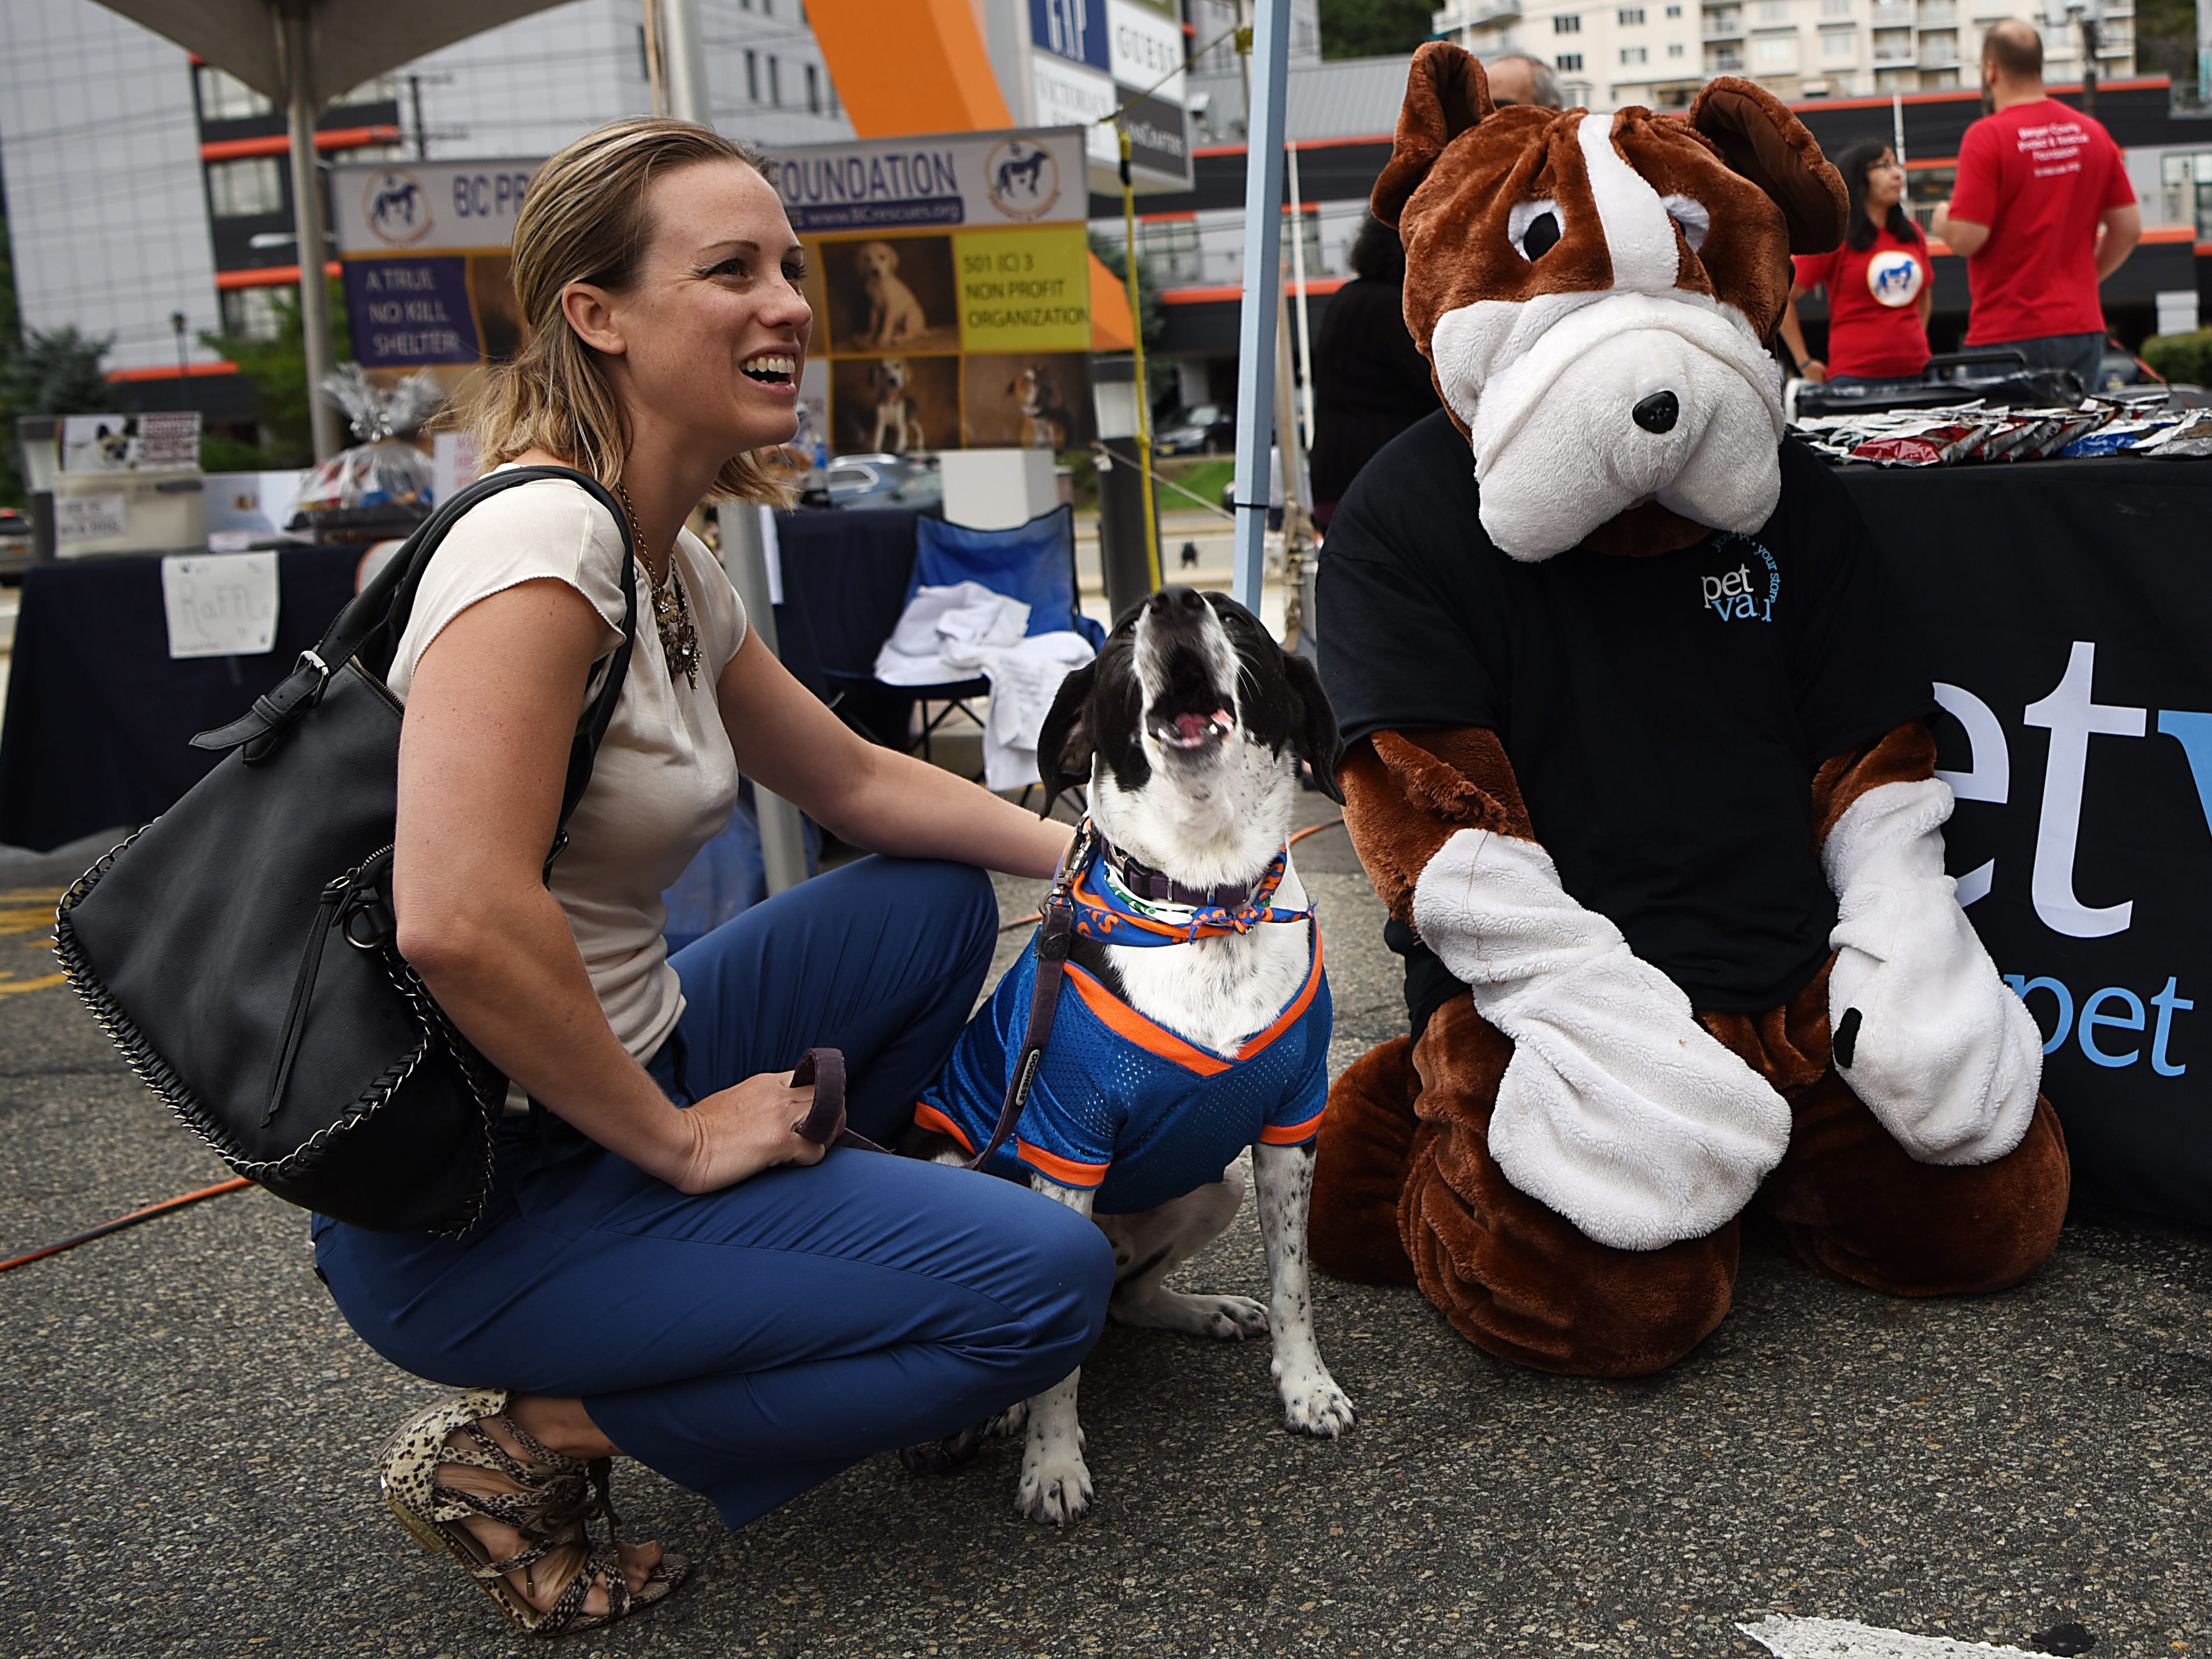 (From left) Erica Page and her dog Casey, five years old, pose for photos with the Pet Valu mascot. Woofstock 2018, a benefit for Bergen County animal rescue organizations, at City Place in Edgewater on Saturday September 8, 2018.